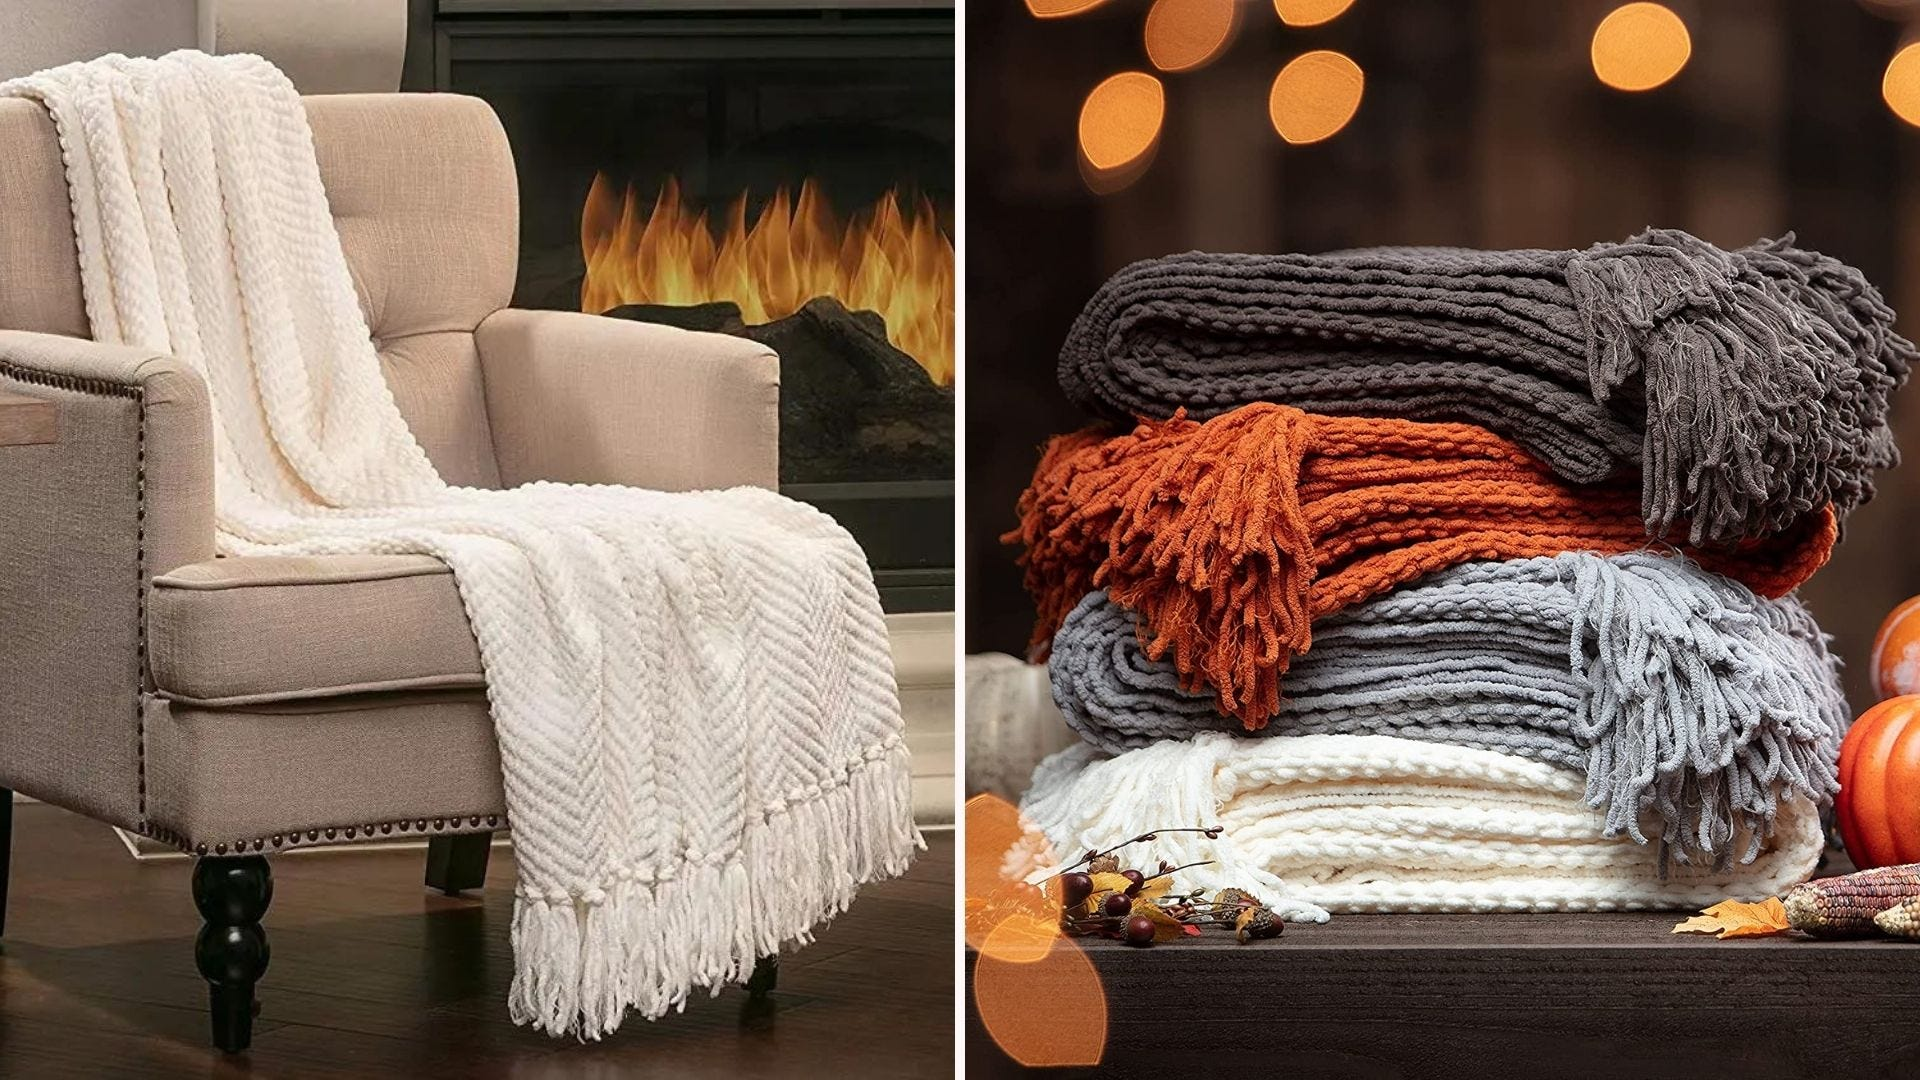 A throw draped over a chair by a fireplace and a stack of cozy blankets